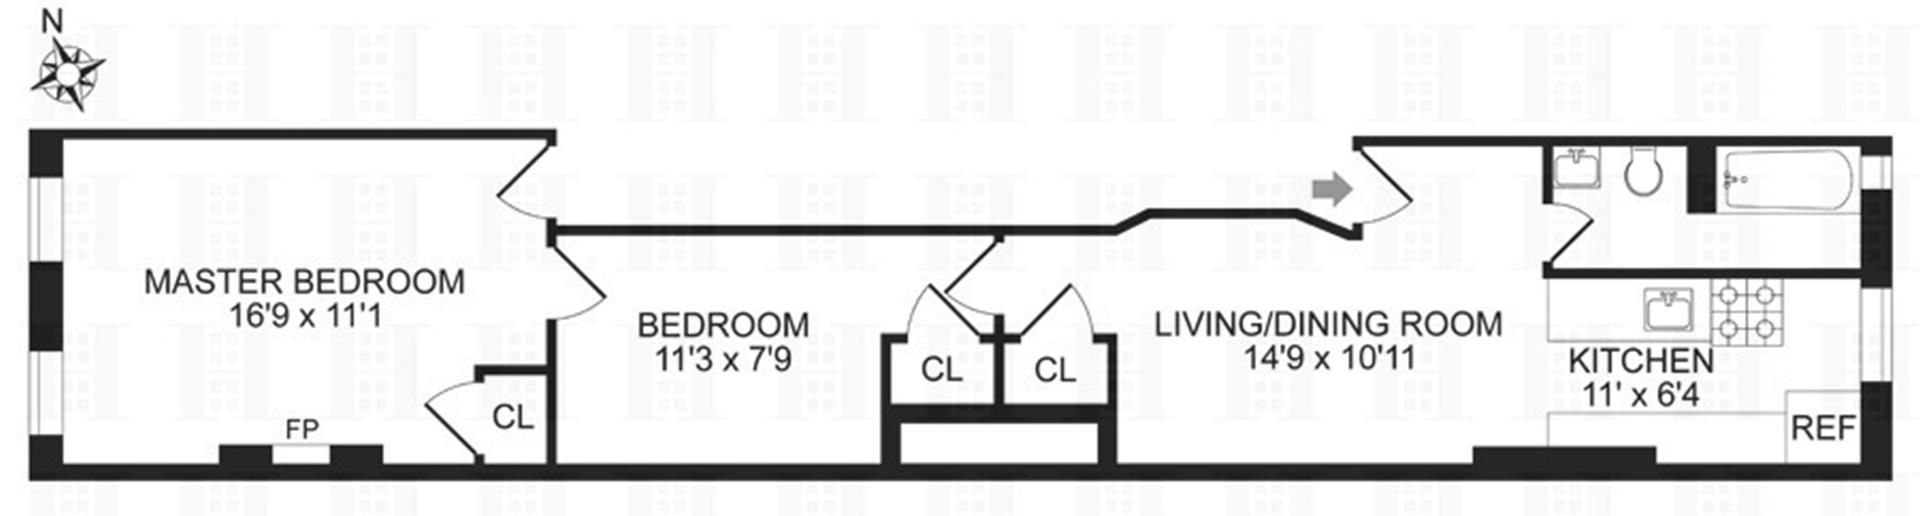 Floor plan of 286 West 127th St, 3A - Harlem, New York